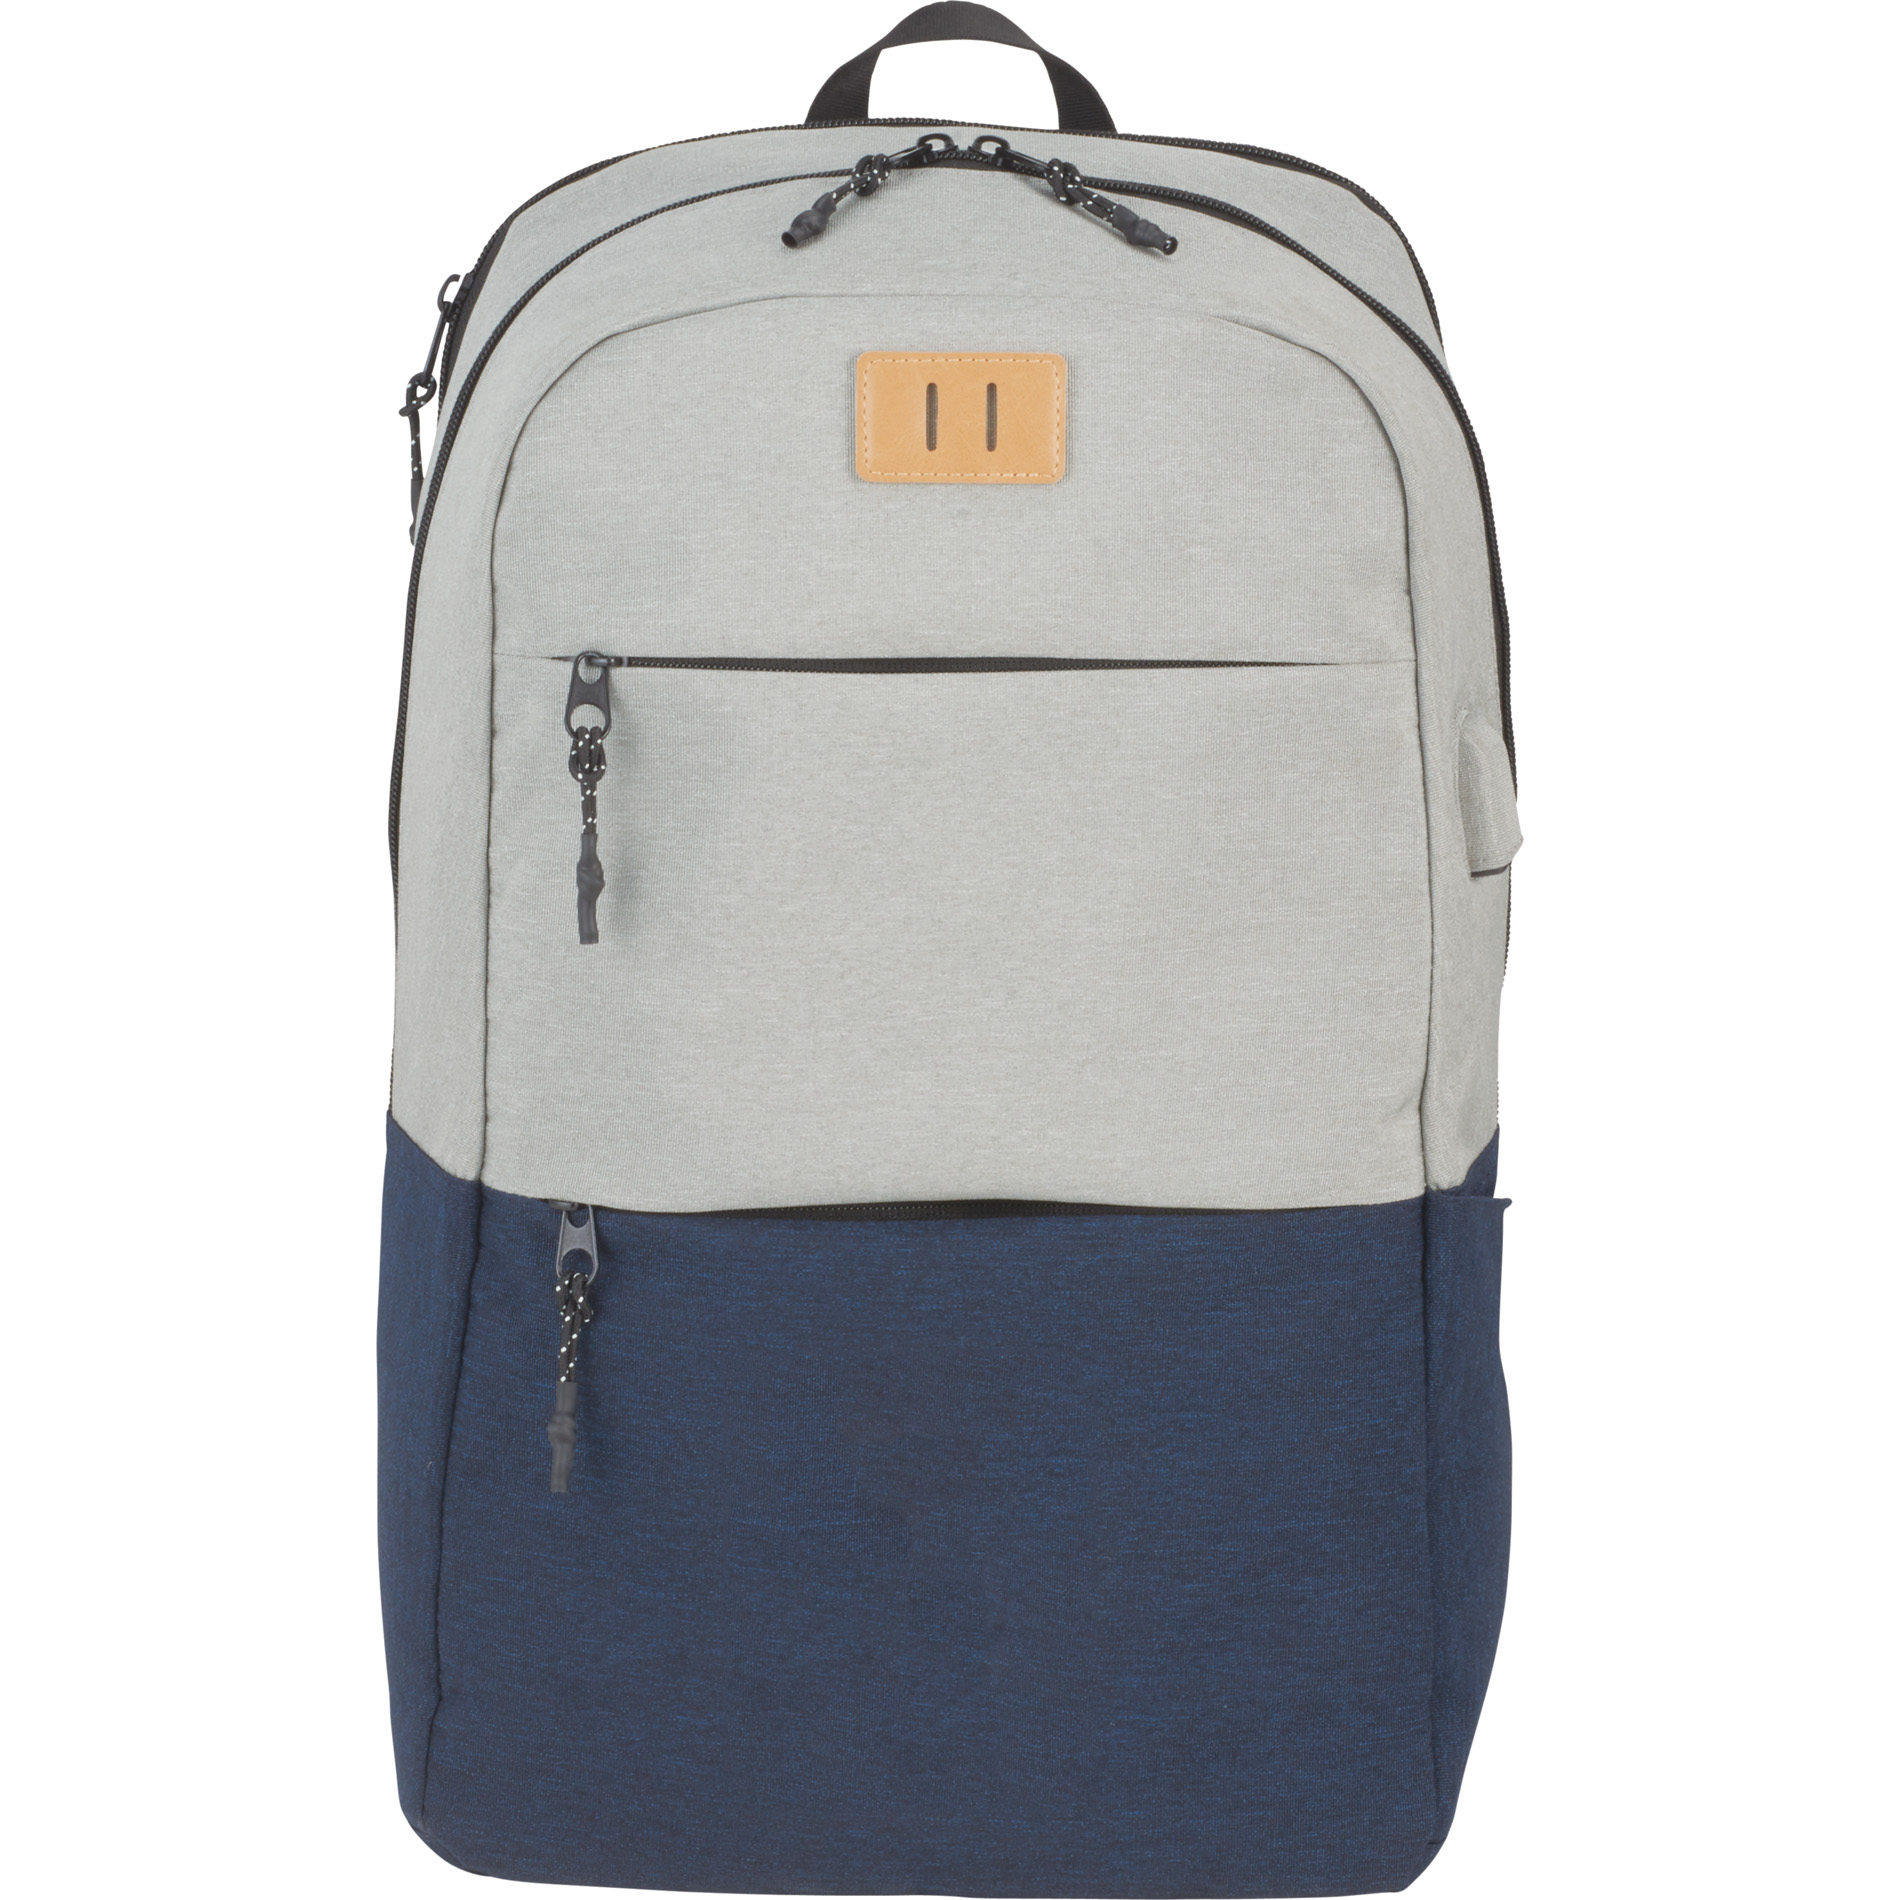 "LEEDS 3850-21 - Linden 15"" Computer Backpack"